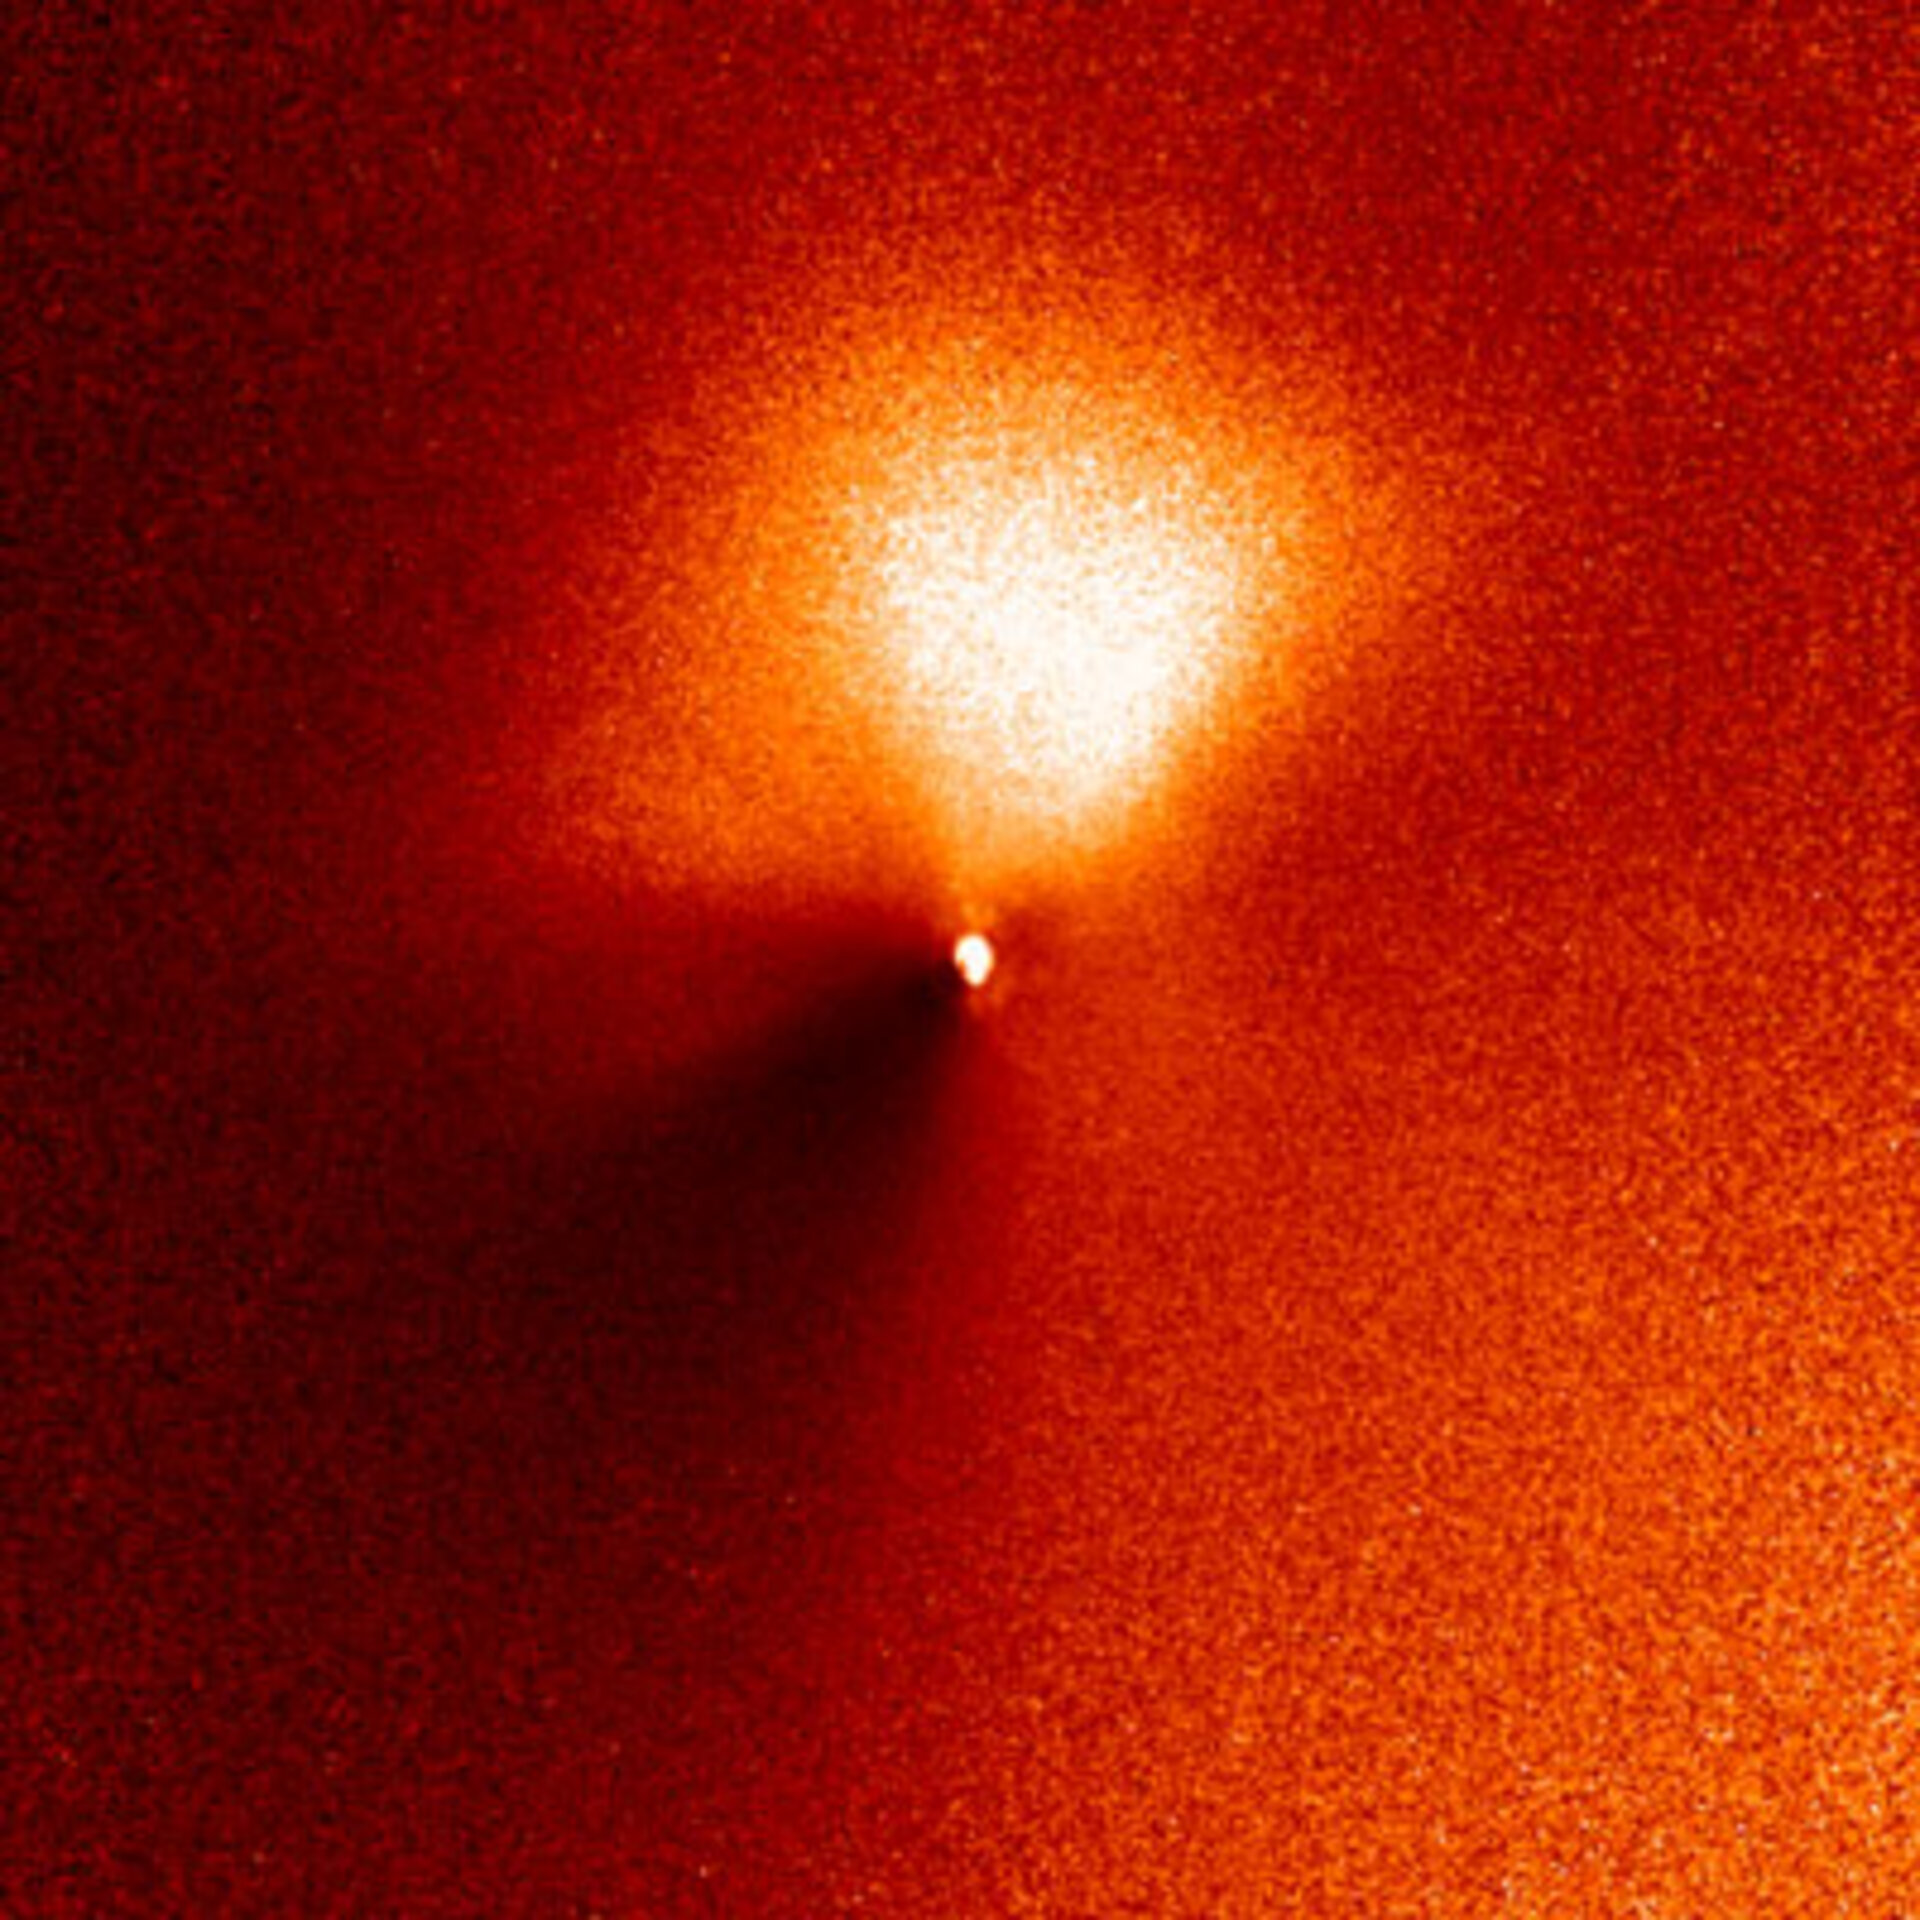 Outburst from Comet 9P/Tempel 1 as seen from Hubble